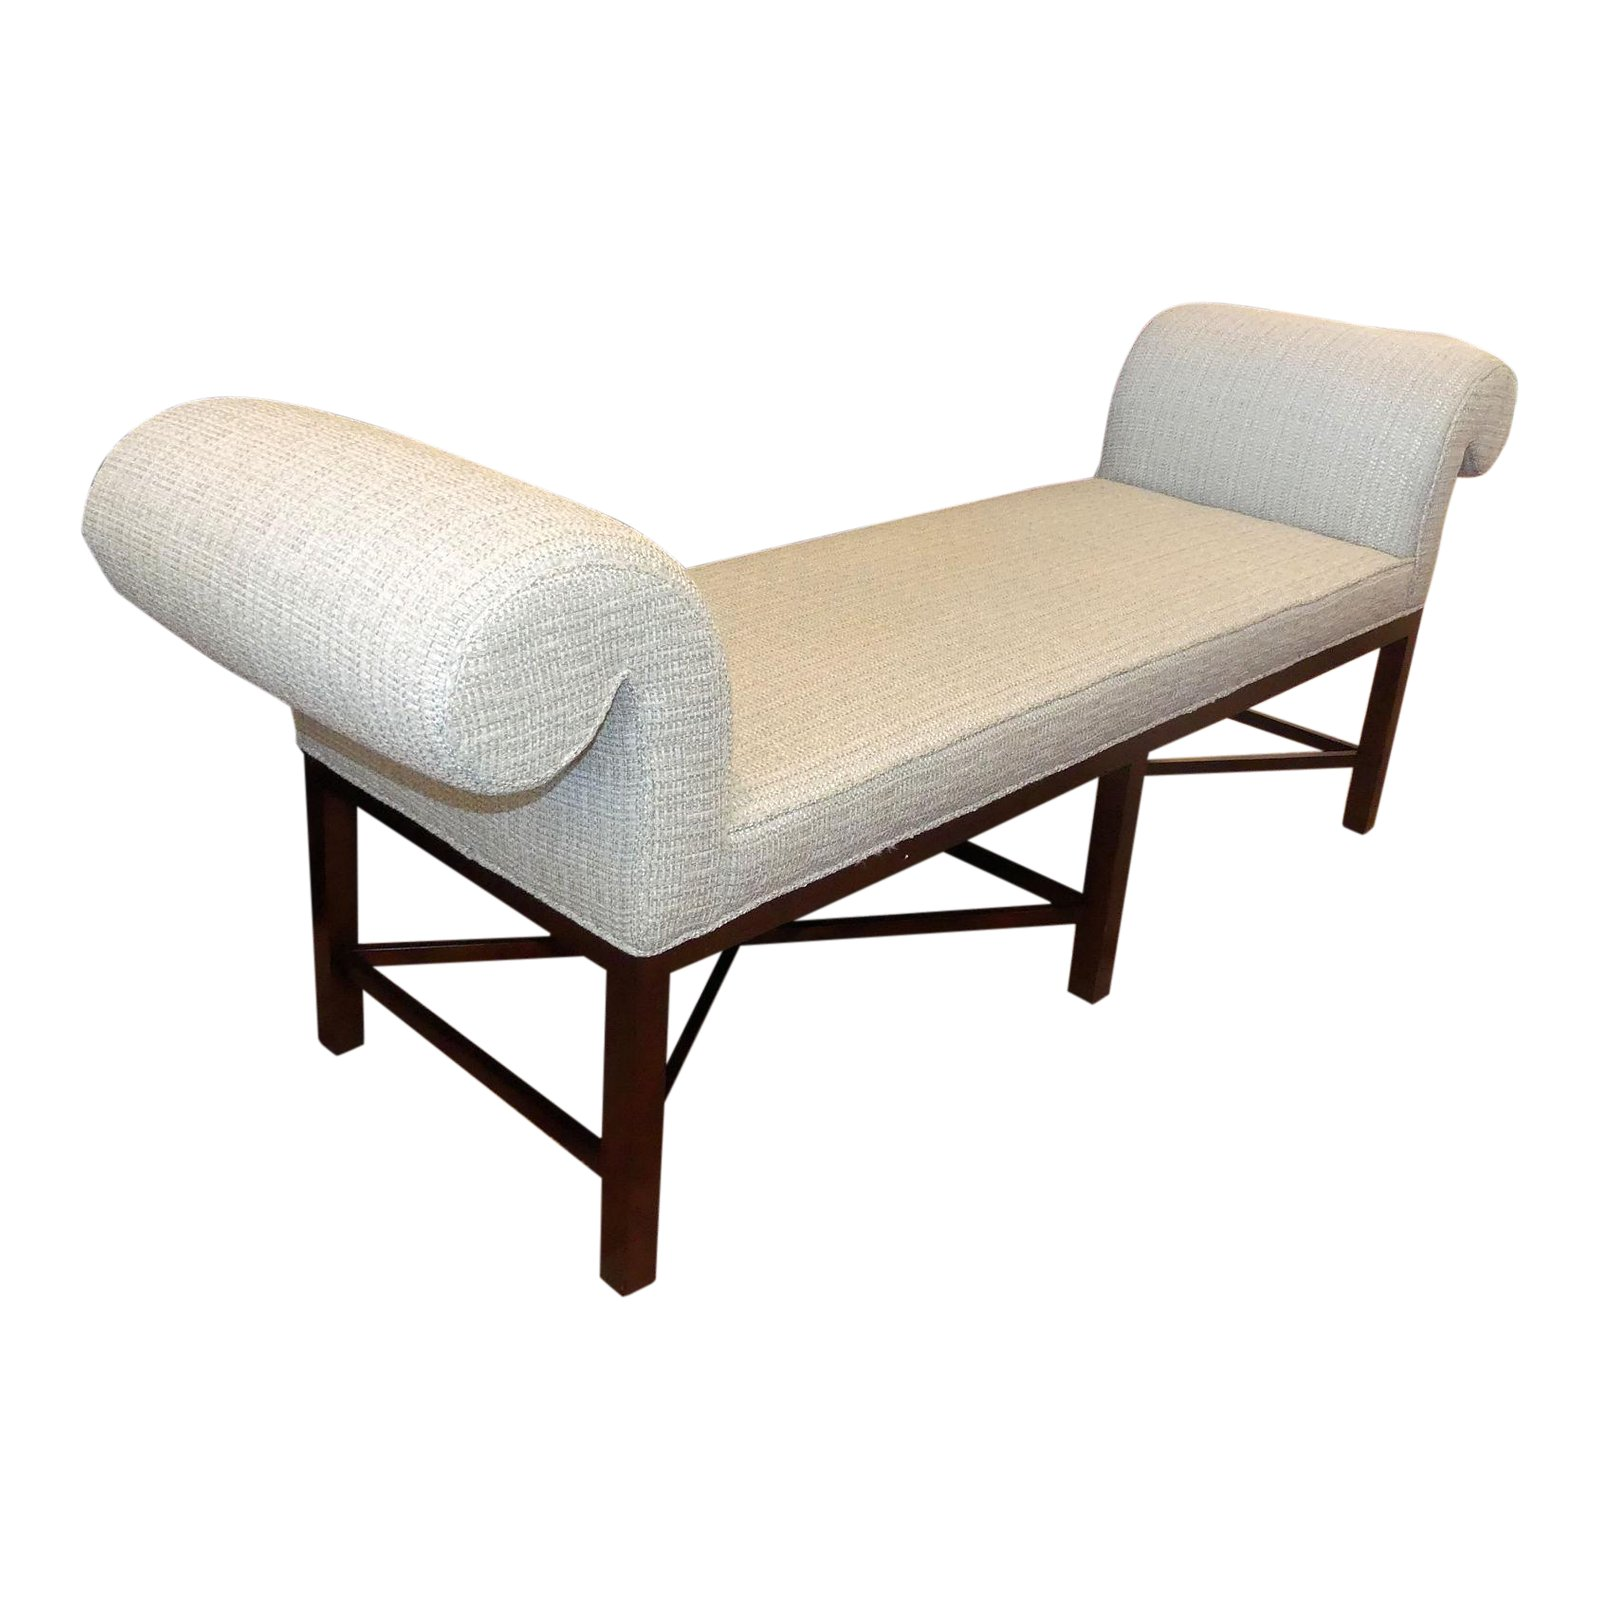 Baker Furniture Contemporary Rolled Arm Bench